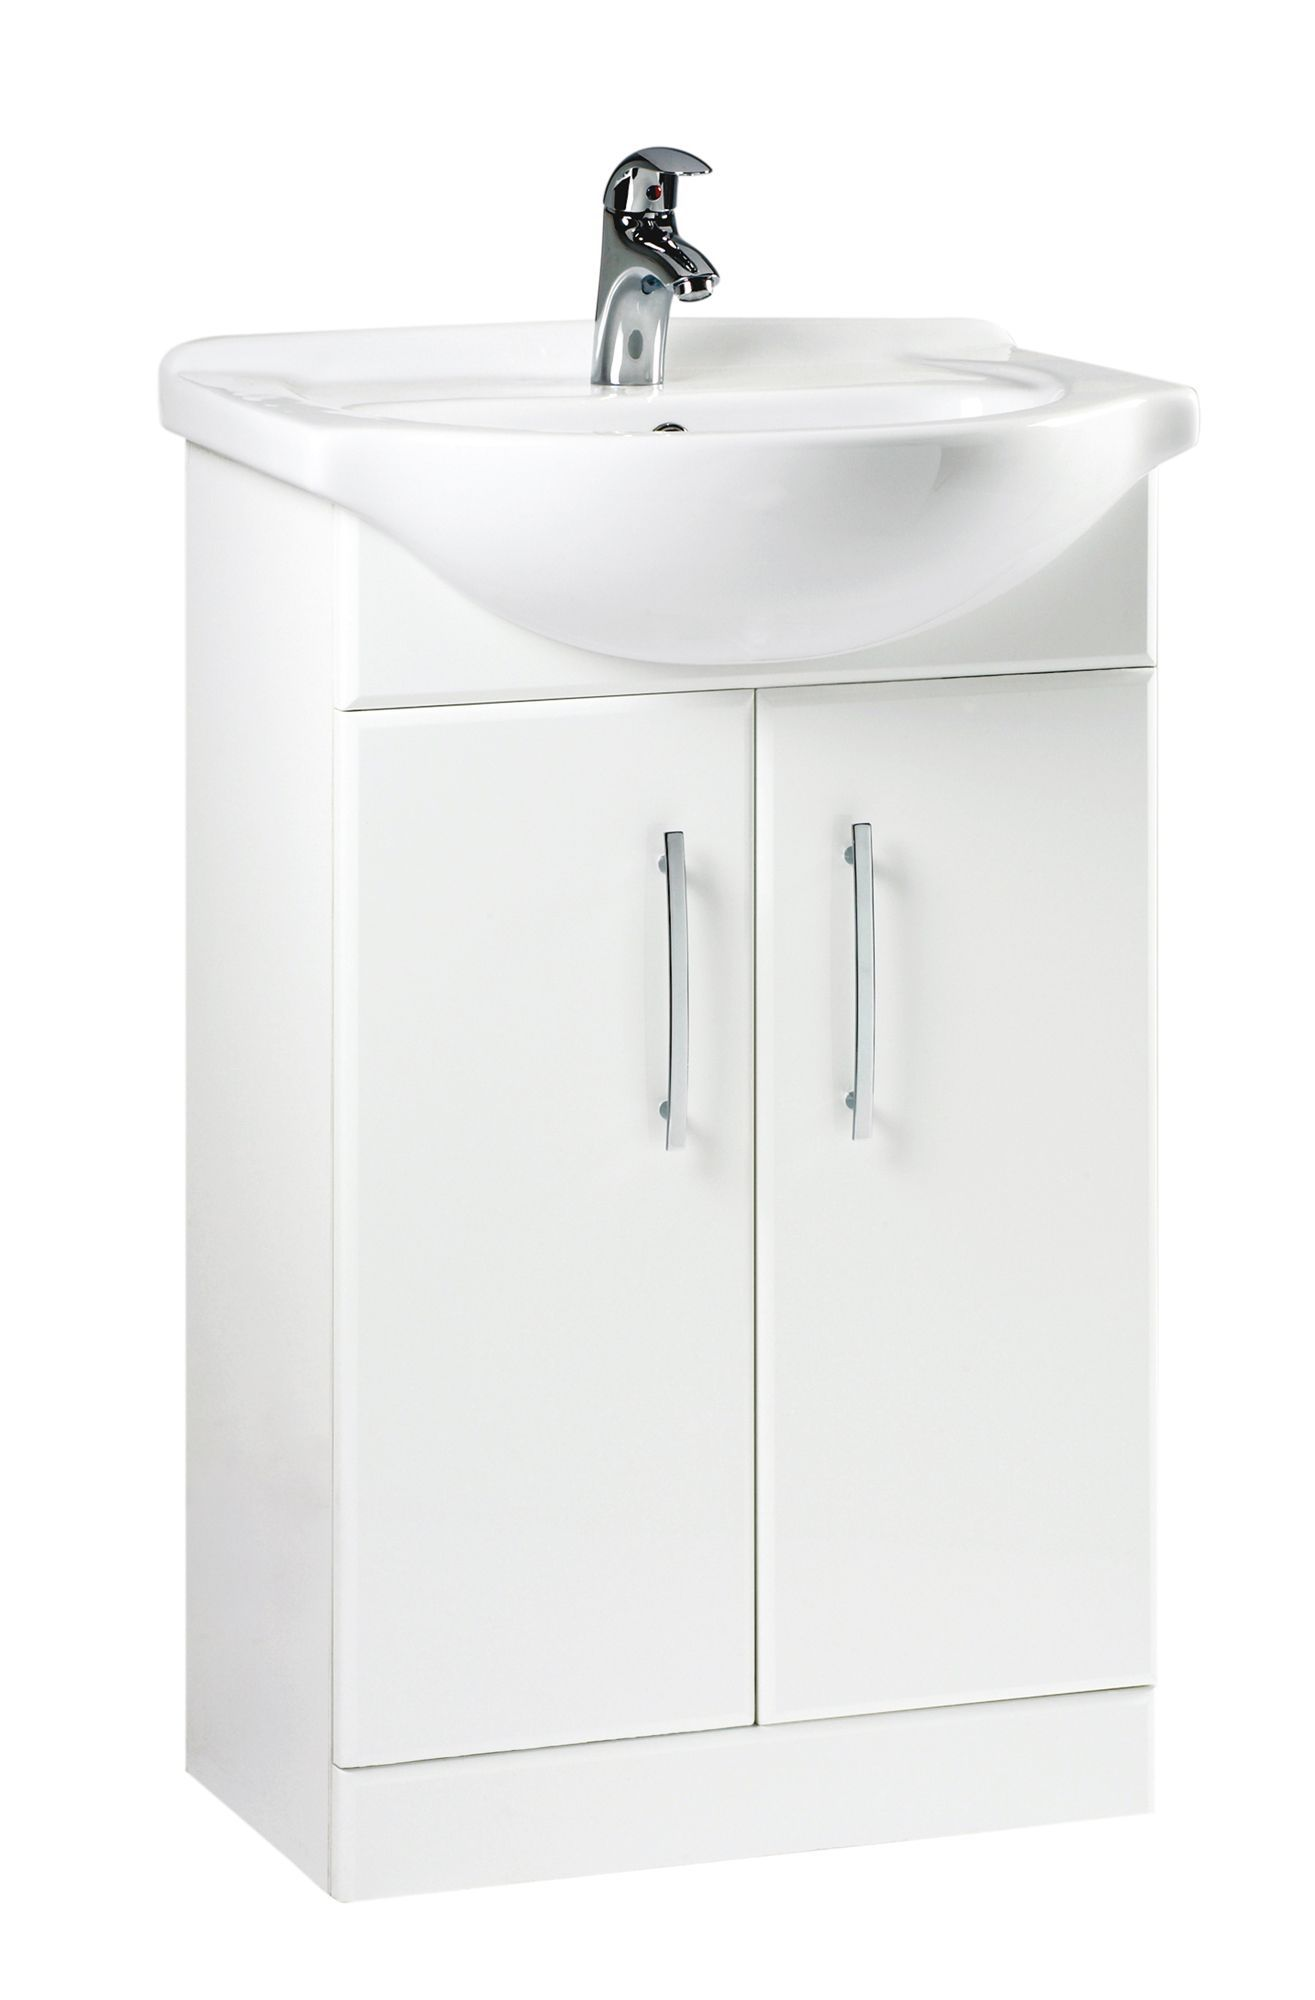 b q white vanity unit basin departments diy at b q. Black Bedroom Furniture Sets. Home Design Ideas